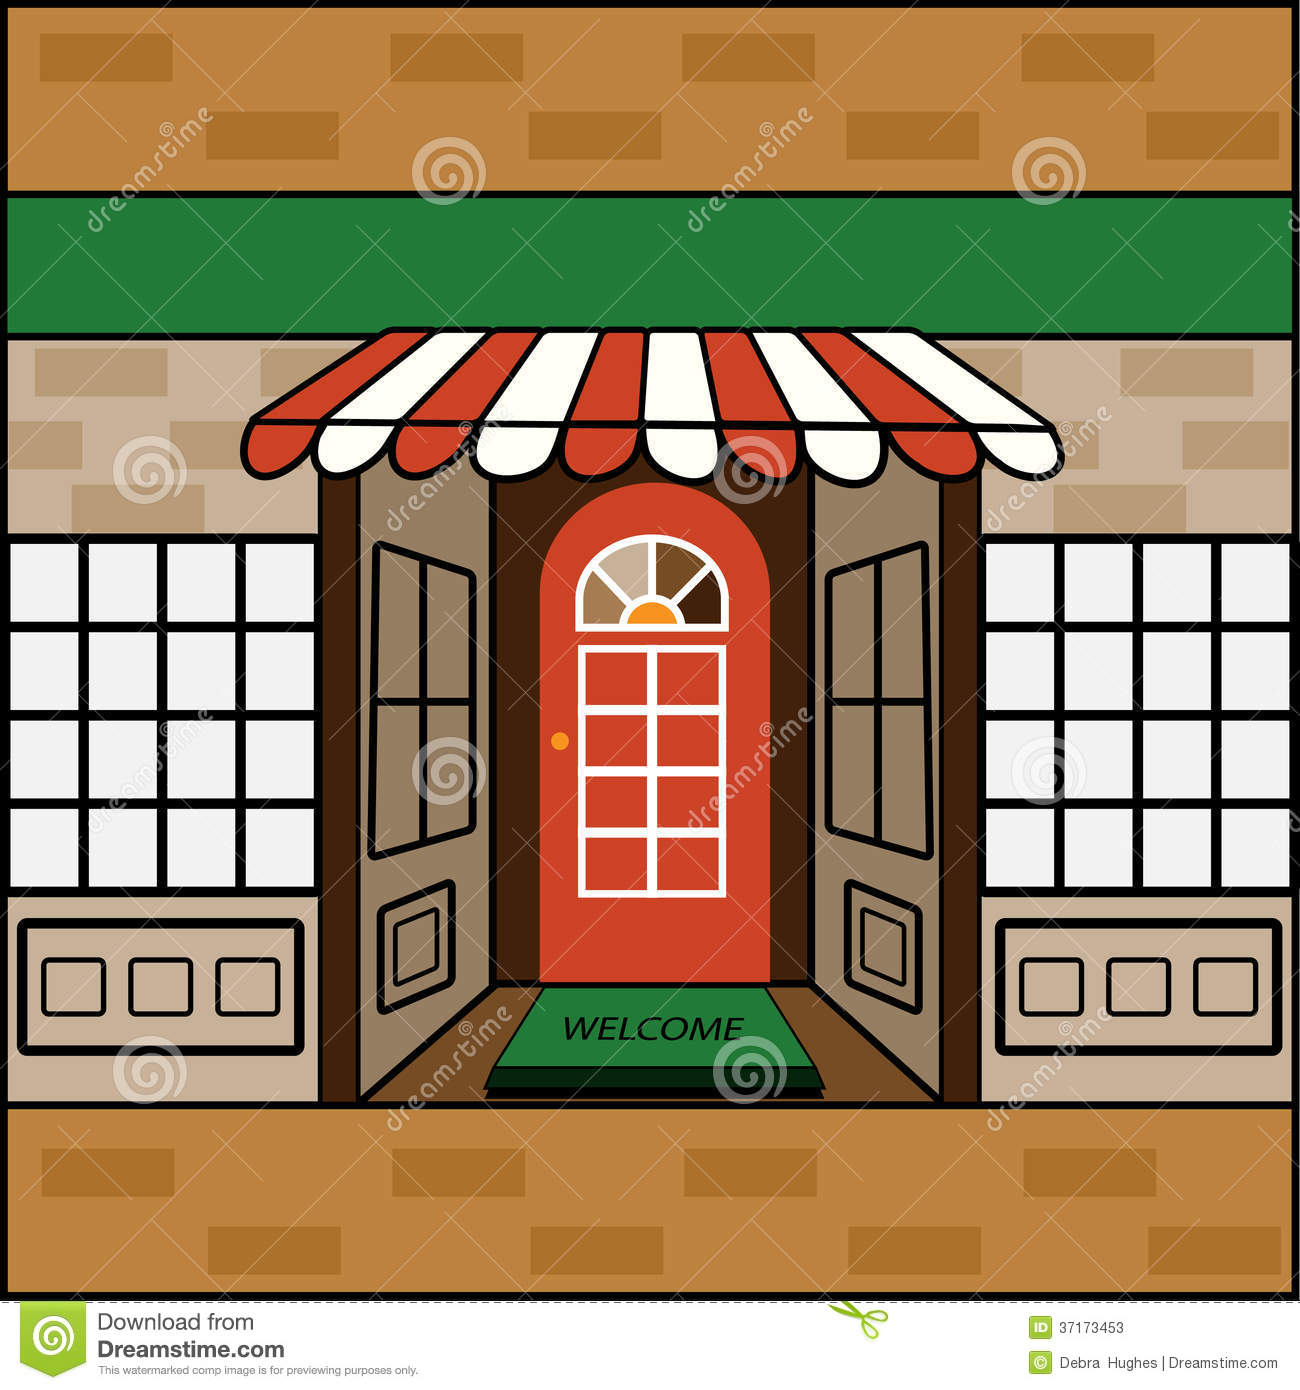 Welcome to the Storefront